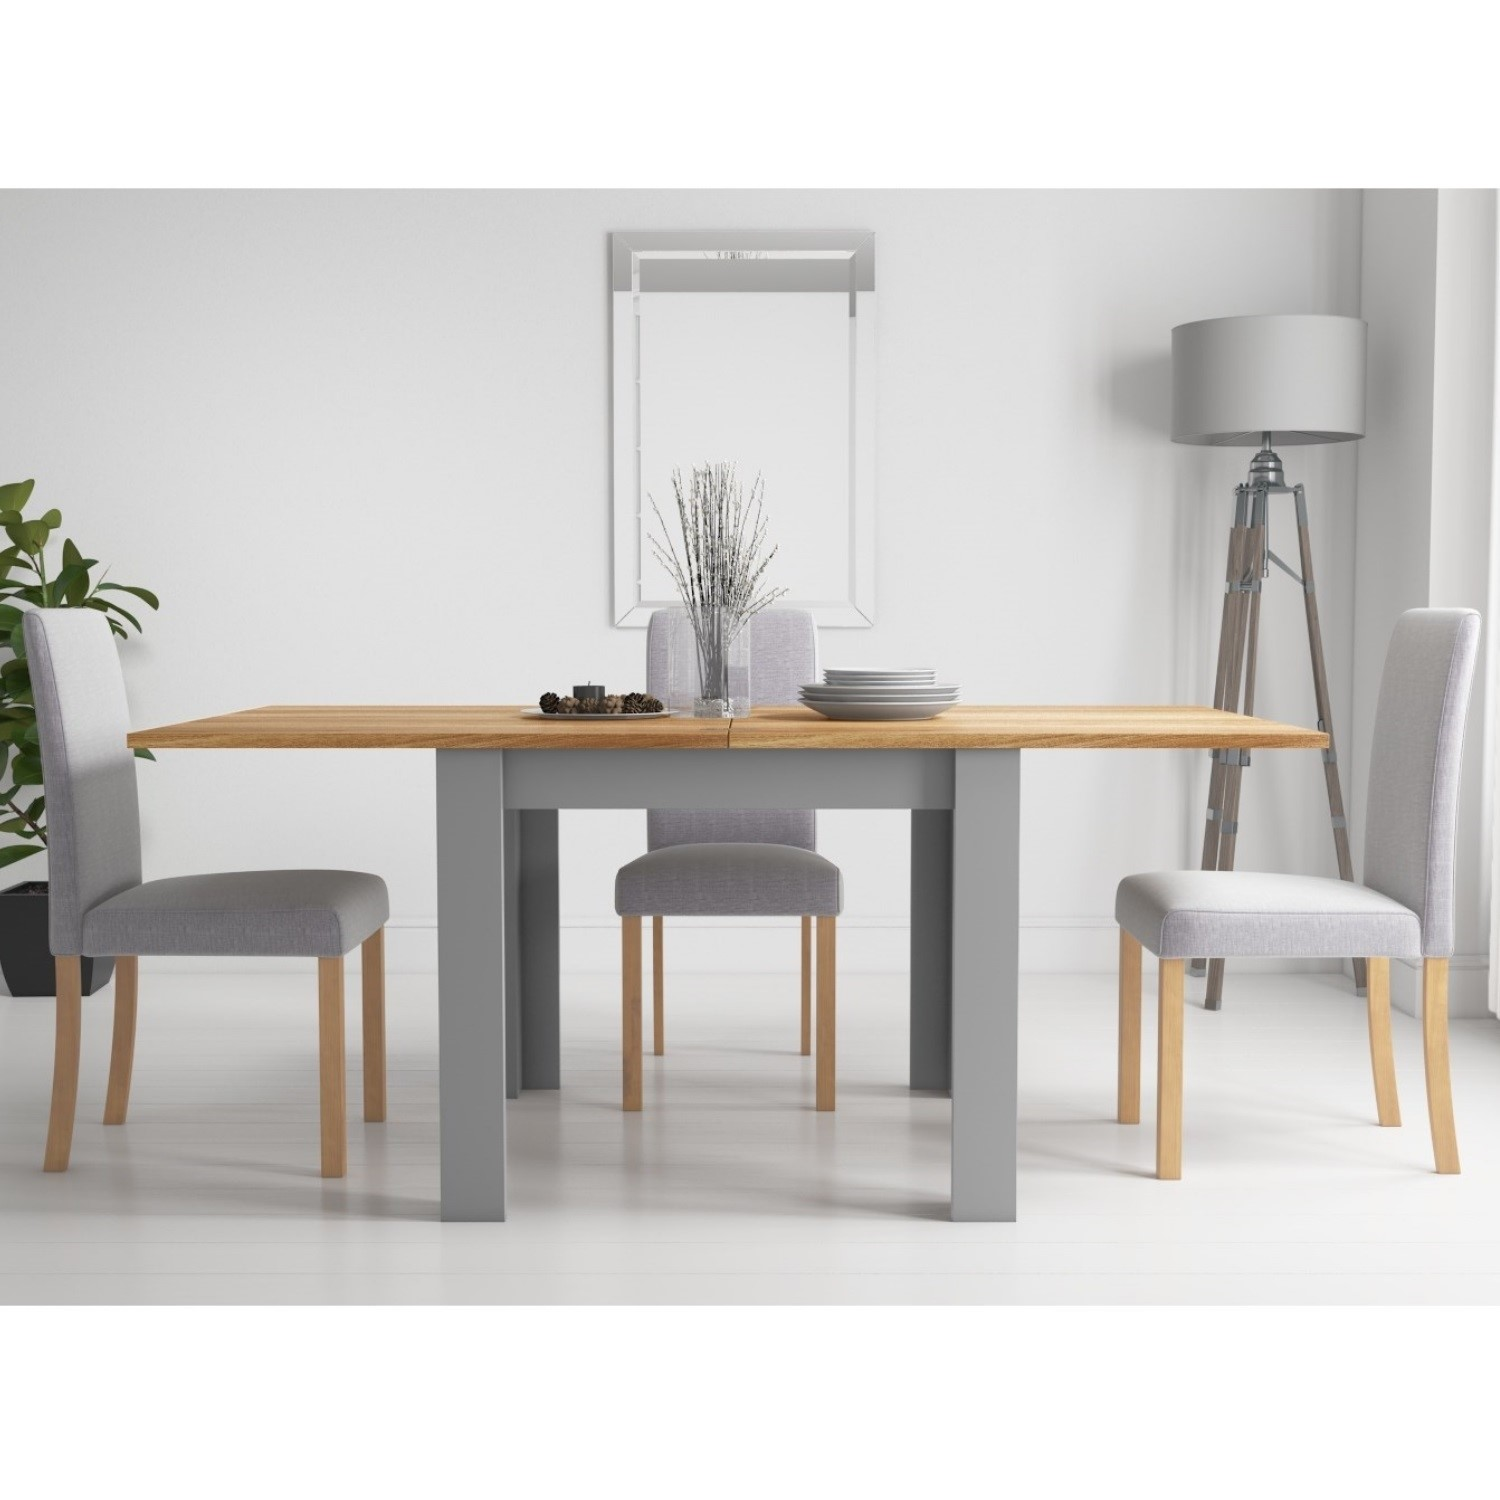 Picture of: New Town Flip Top Grey Natural Dining Set With 4 Chairs In Grey Fabric Furniture123